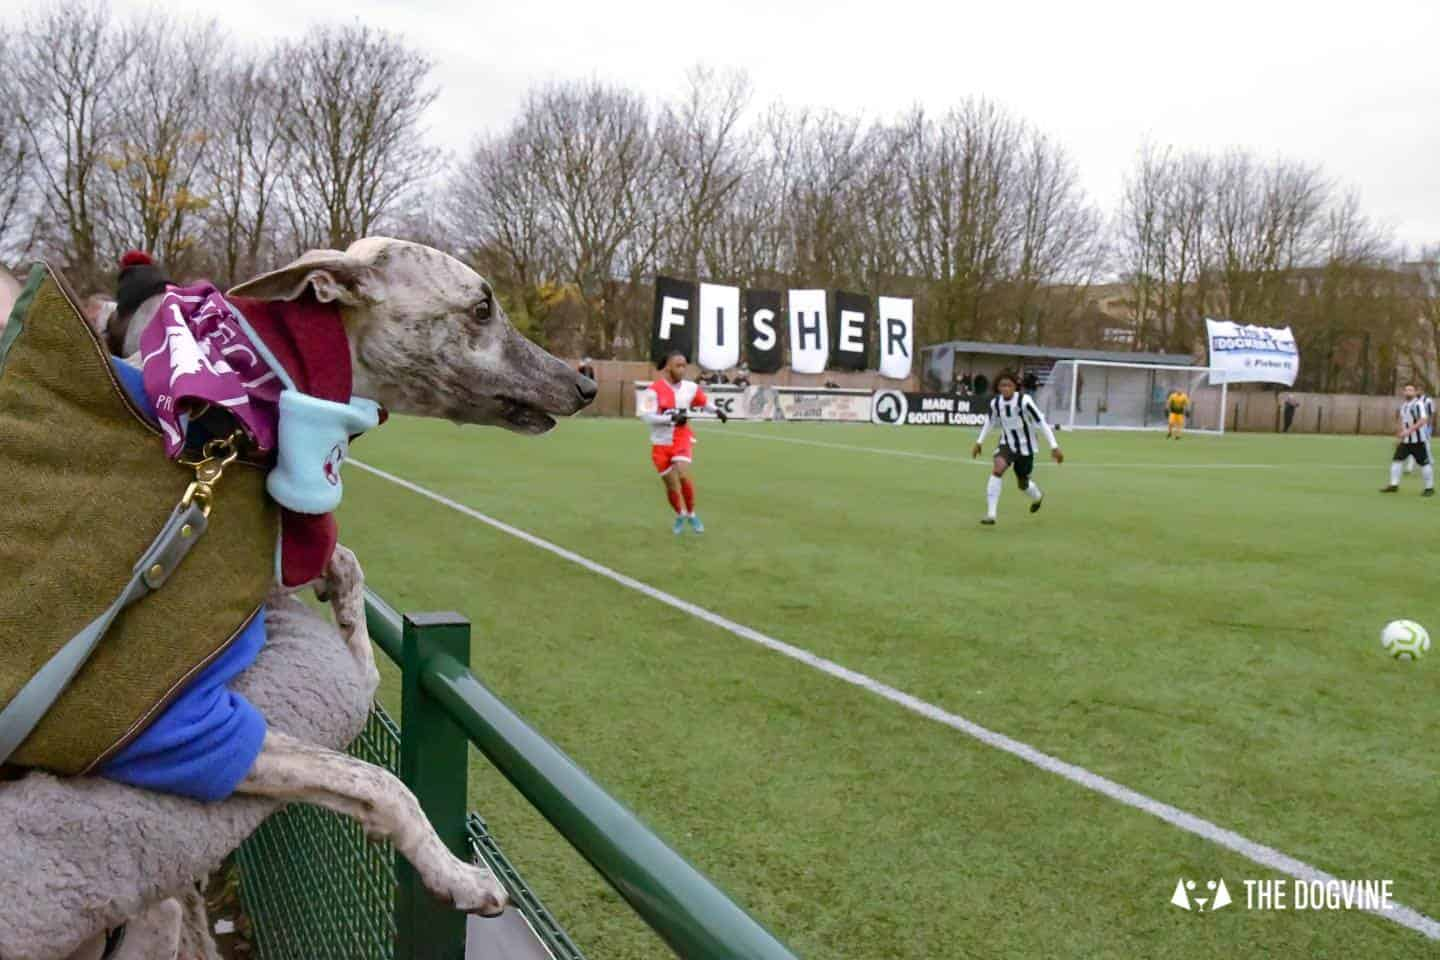 Dog-friendly Football Teams in London - Rolo the Whippet cheers the team on